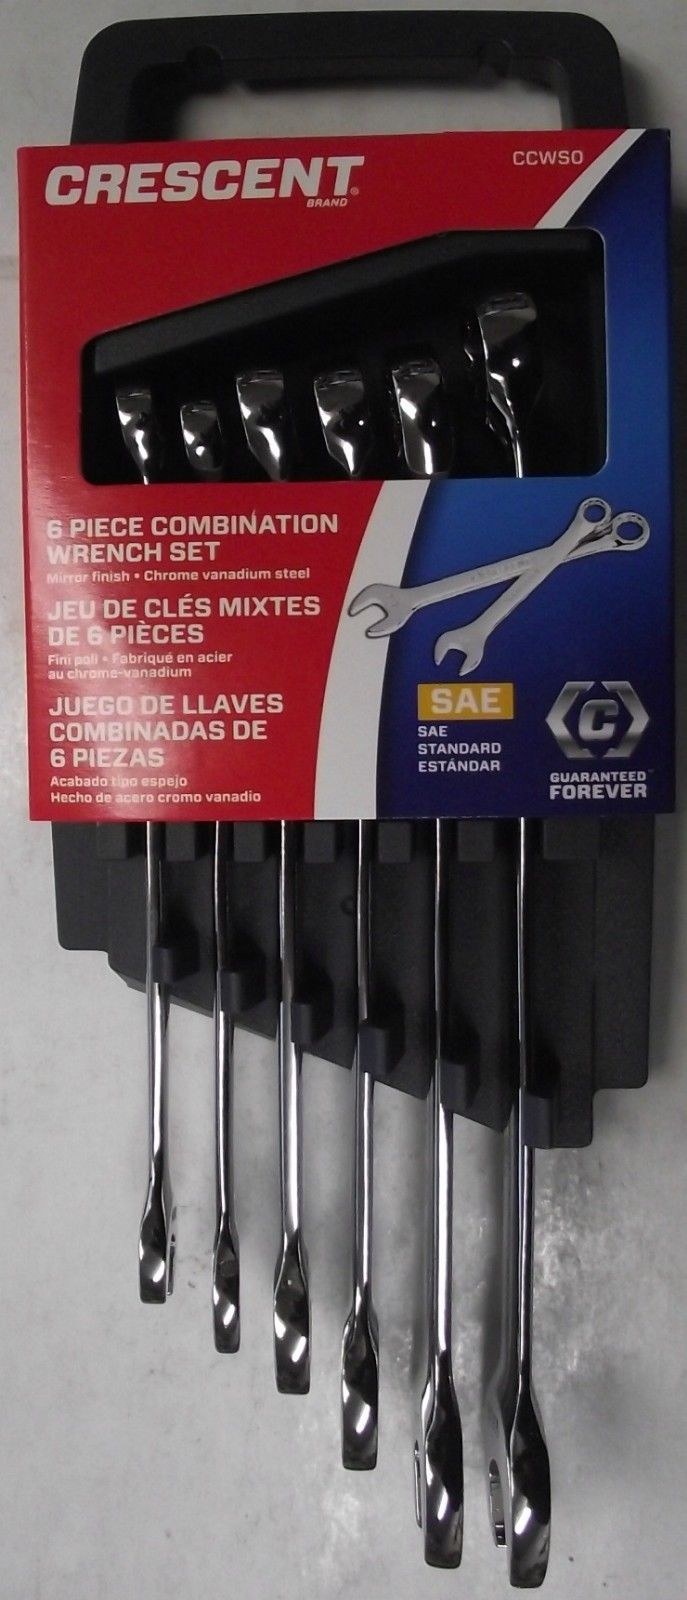 Crescent Brand CCWS0 6 Pc SAE Combination Wrench Set